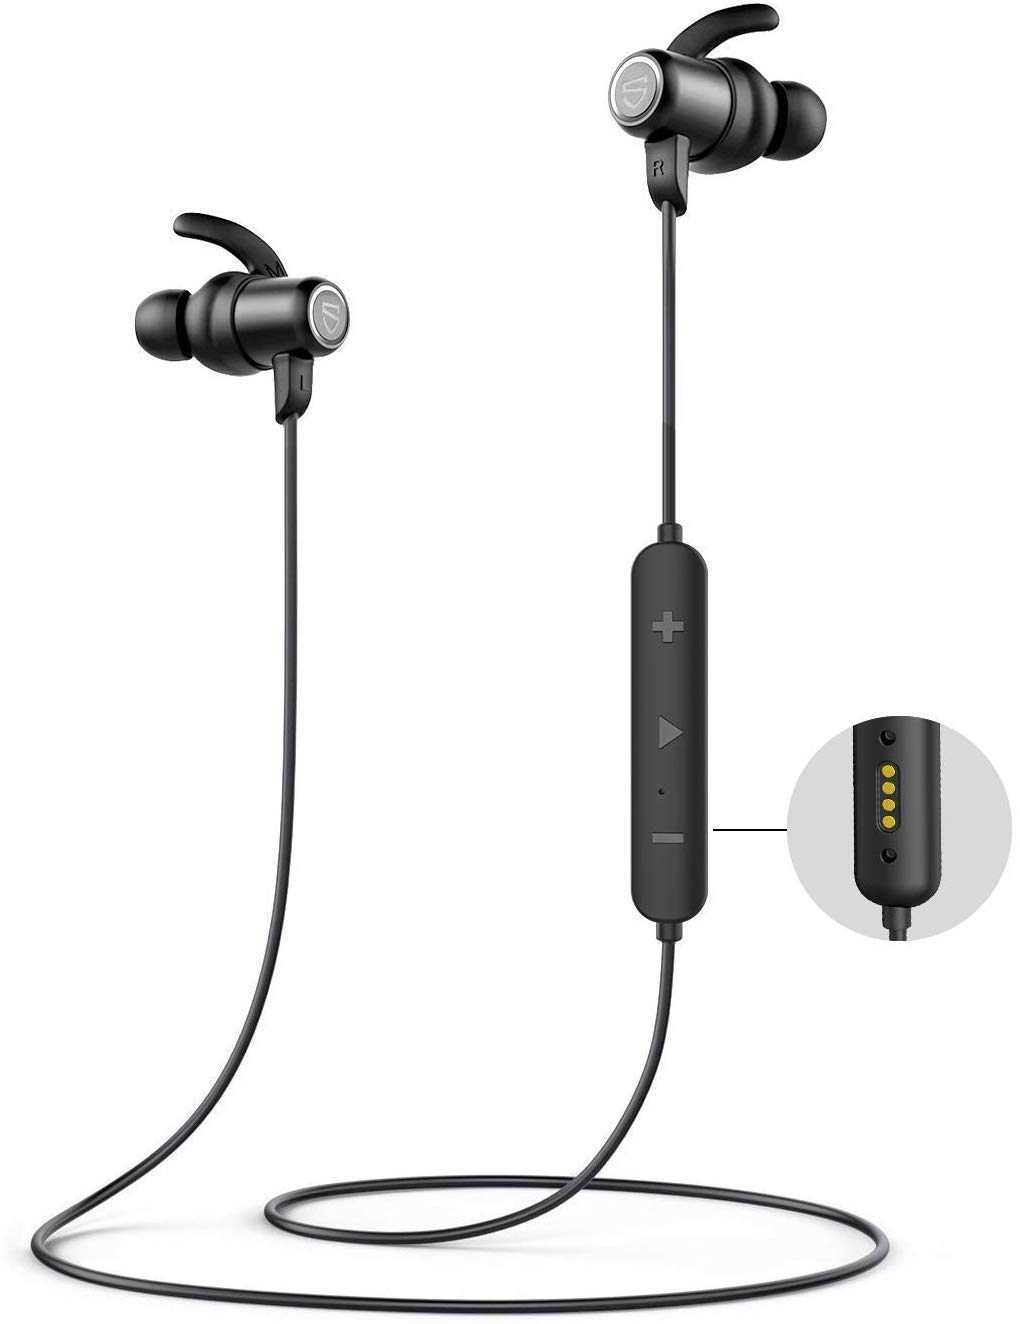 SoundPEATS Sports in-ear Earbuds IPX8 Sweatproof,Q35 HD Wireless Headphones APTX HD Bluetooth 5.0 Running Earphones with Magnetic Contactor,CVC Noise Cancellation Mic,14hrs Playtime